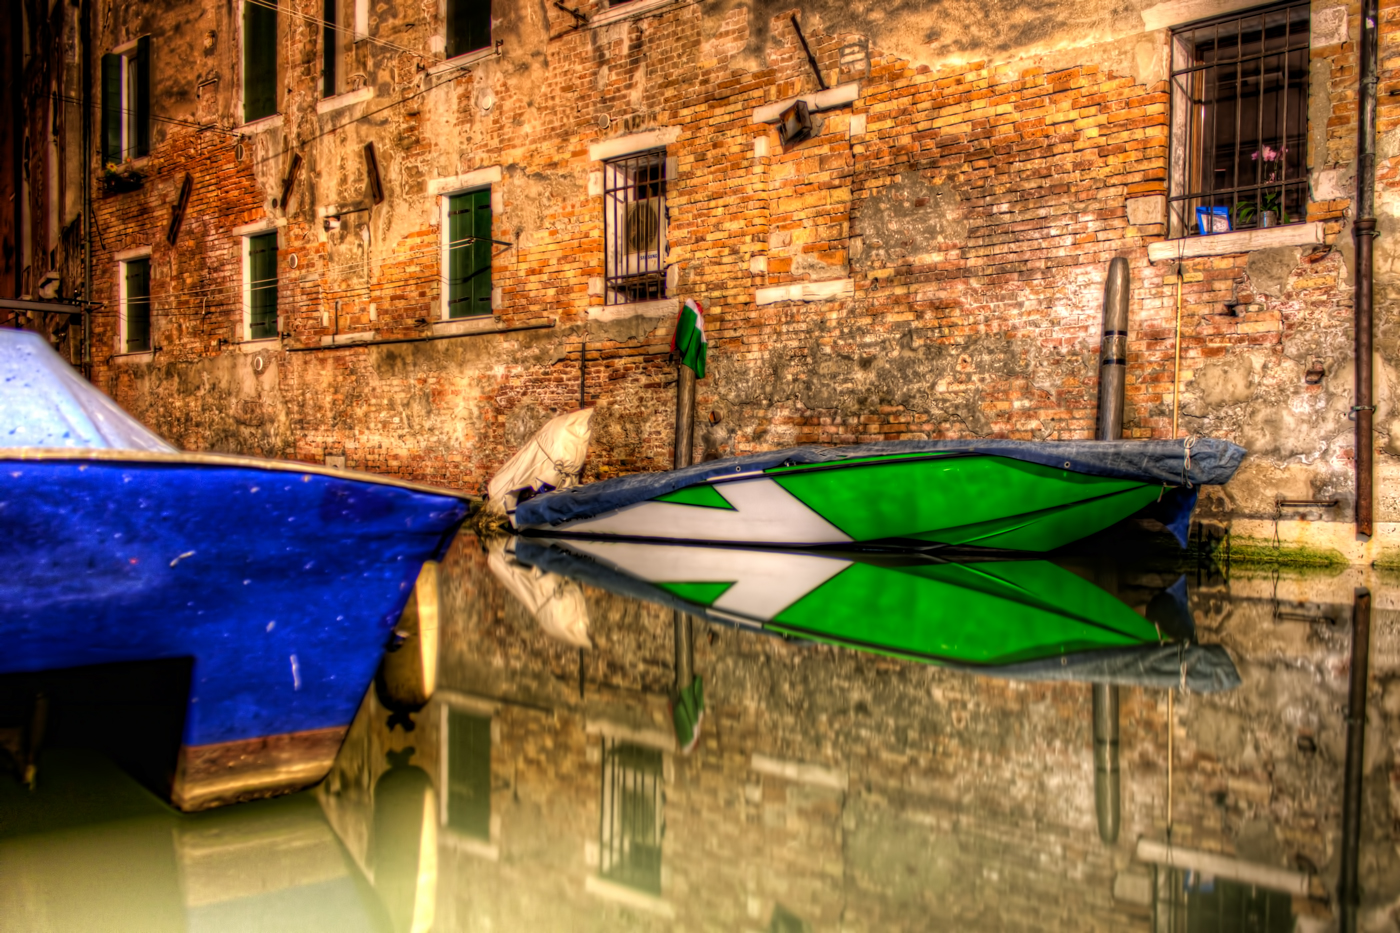 Venice - Perfect Mirror (HDR)